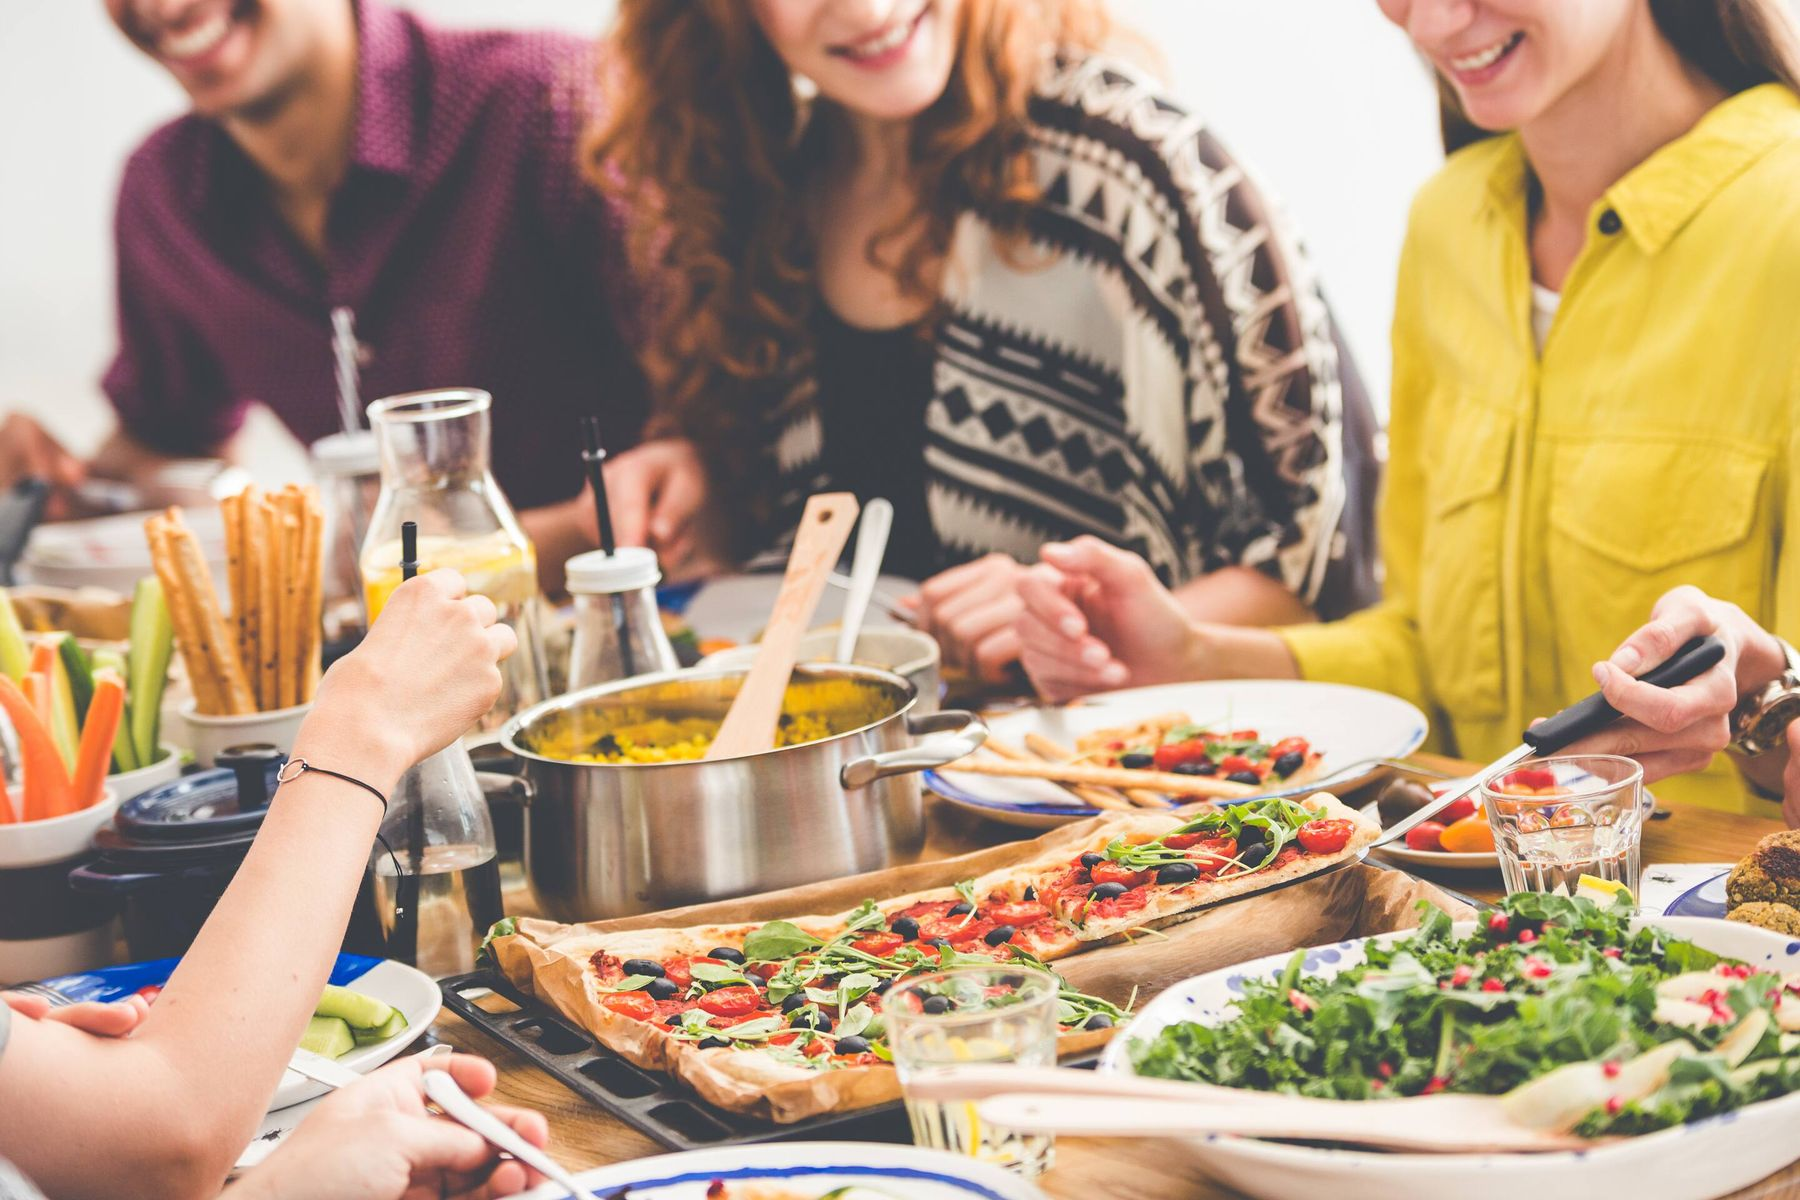 Throwing your first dinner party? Here are some simple tricks to get your house ready!